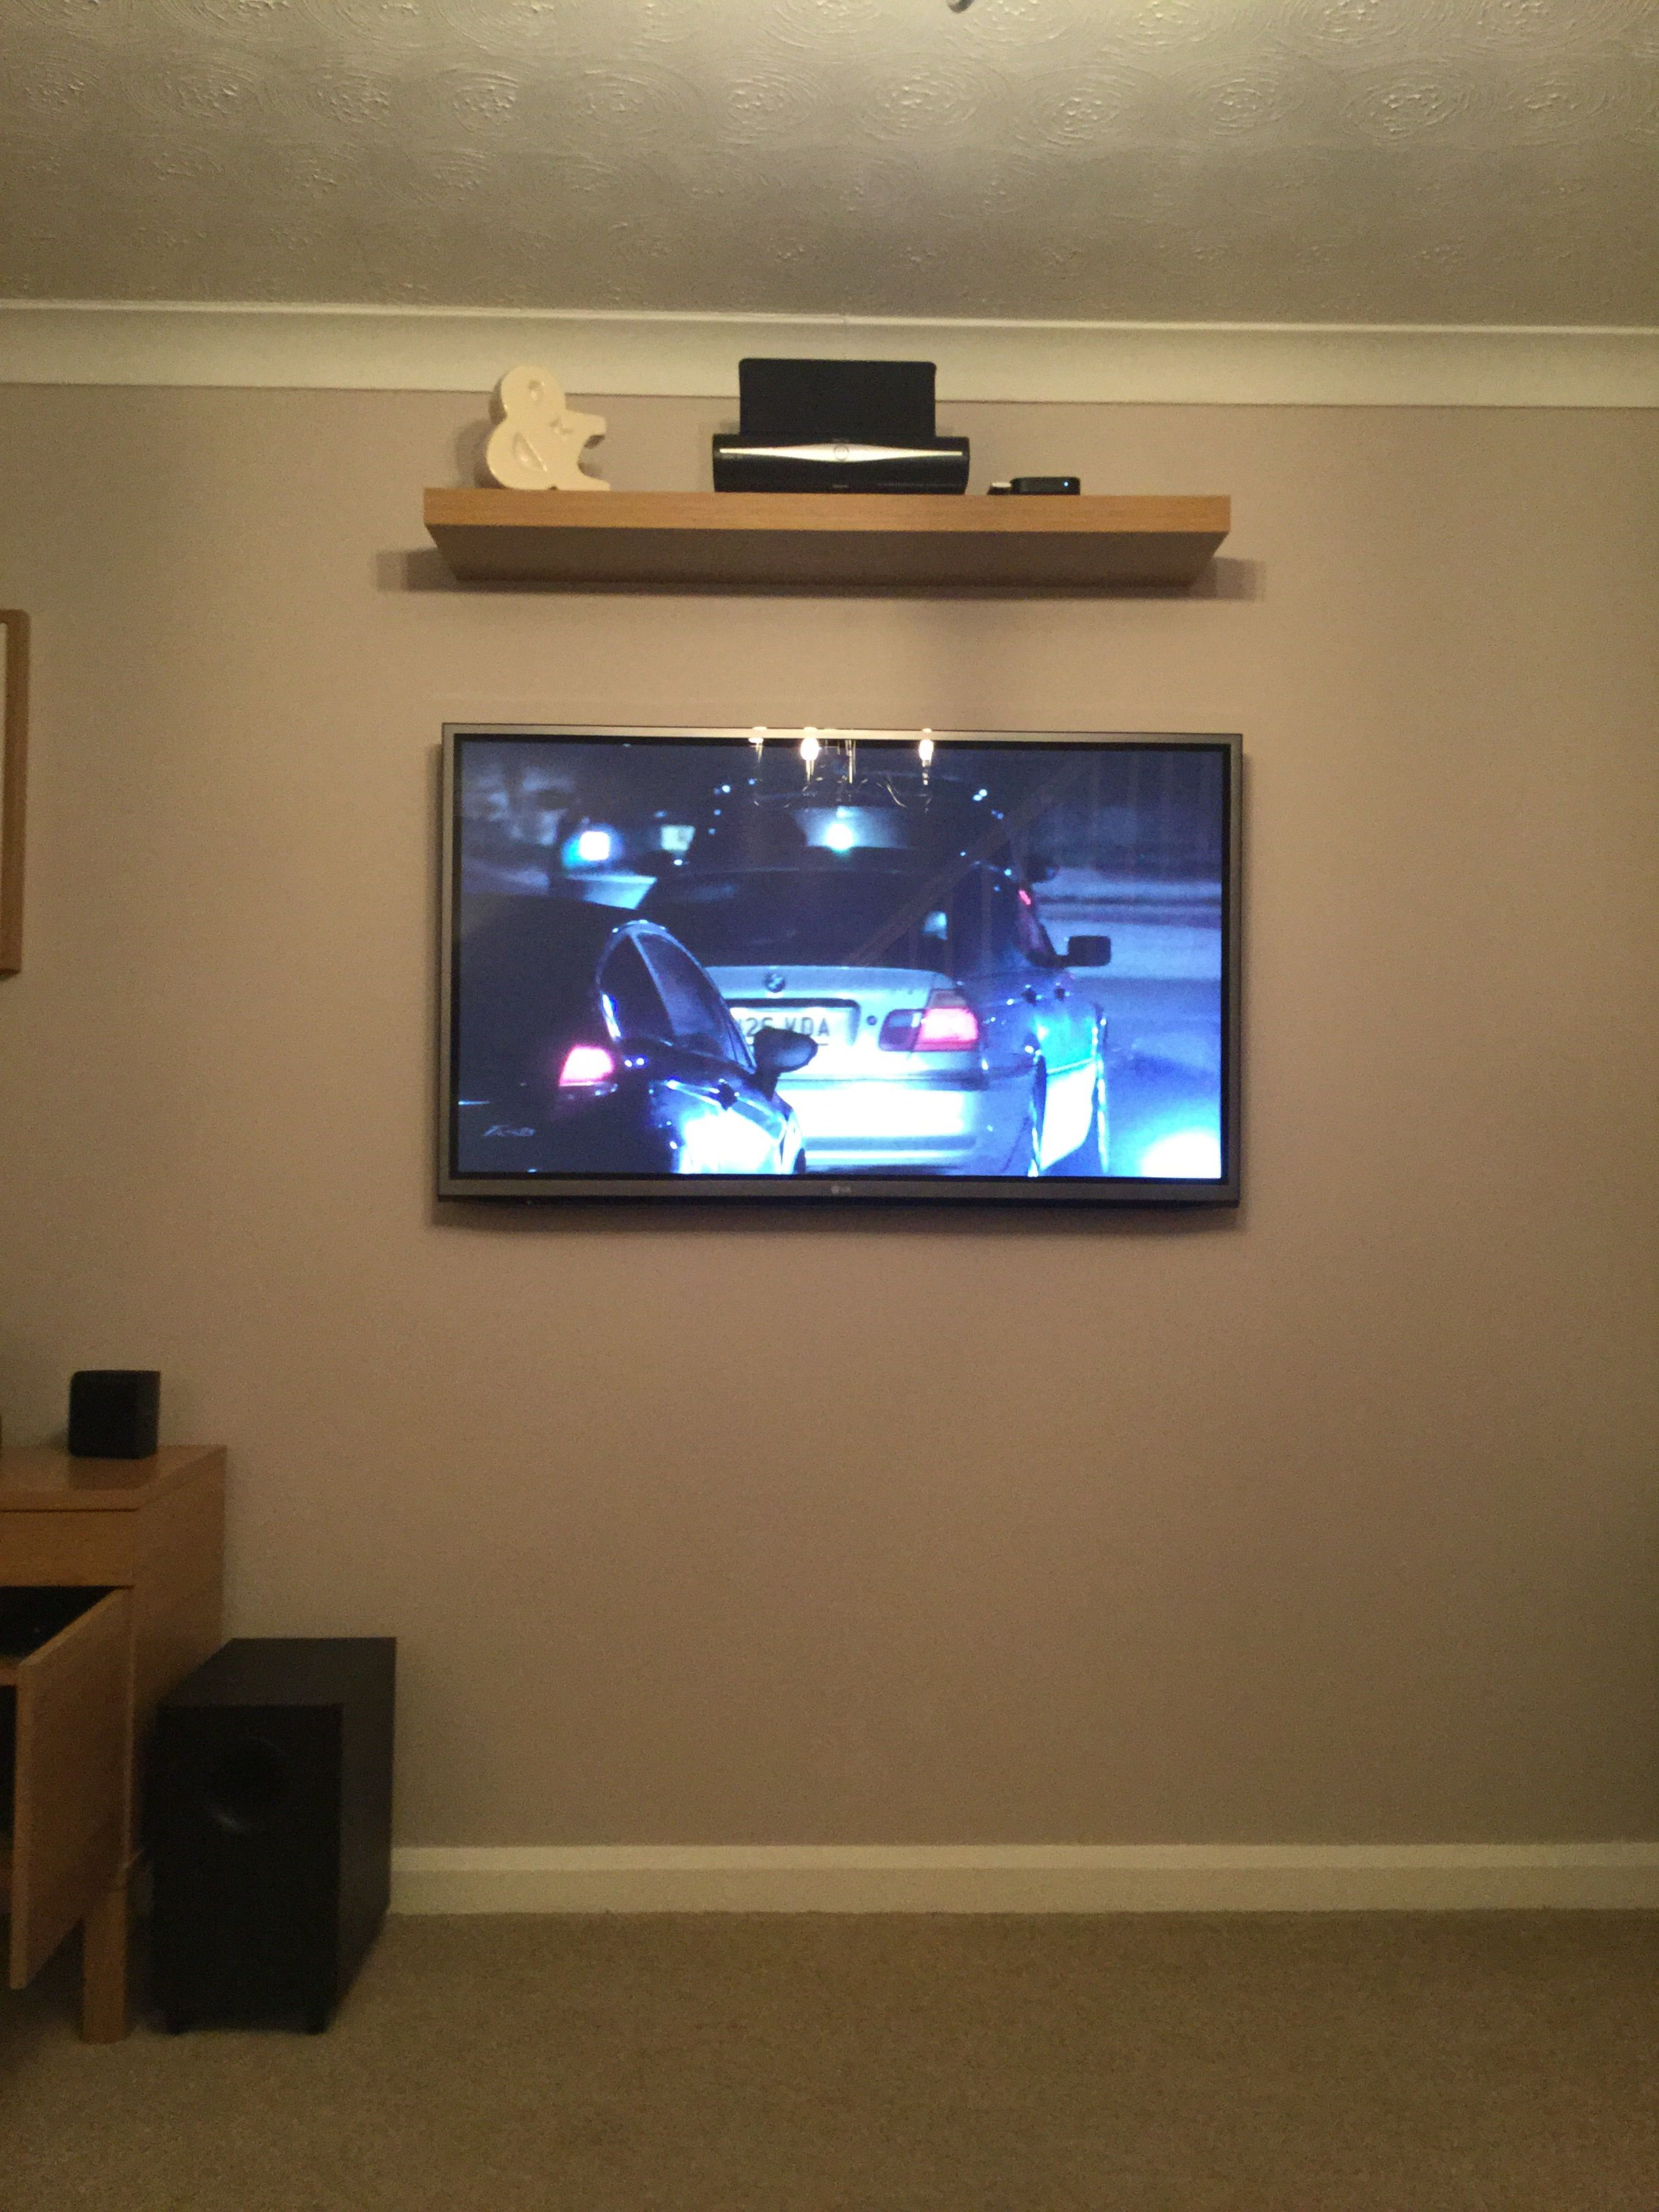 Tv on the wall with cable/satellite receiver on the shelf